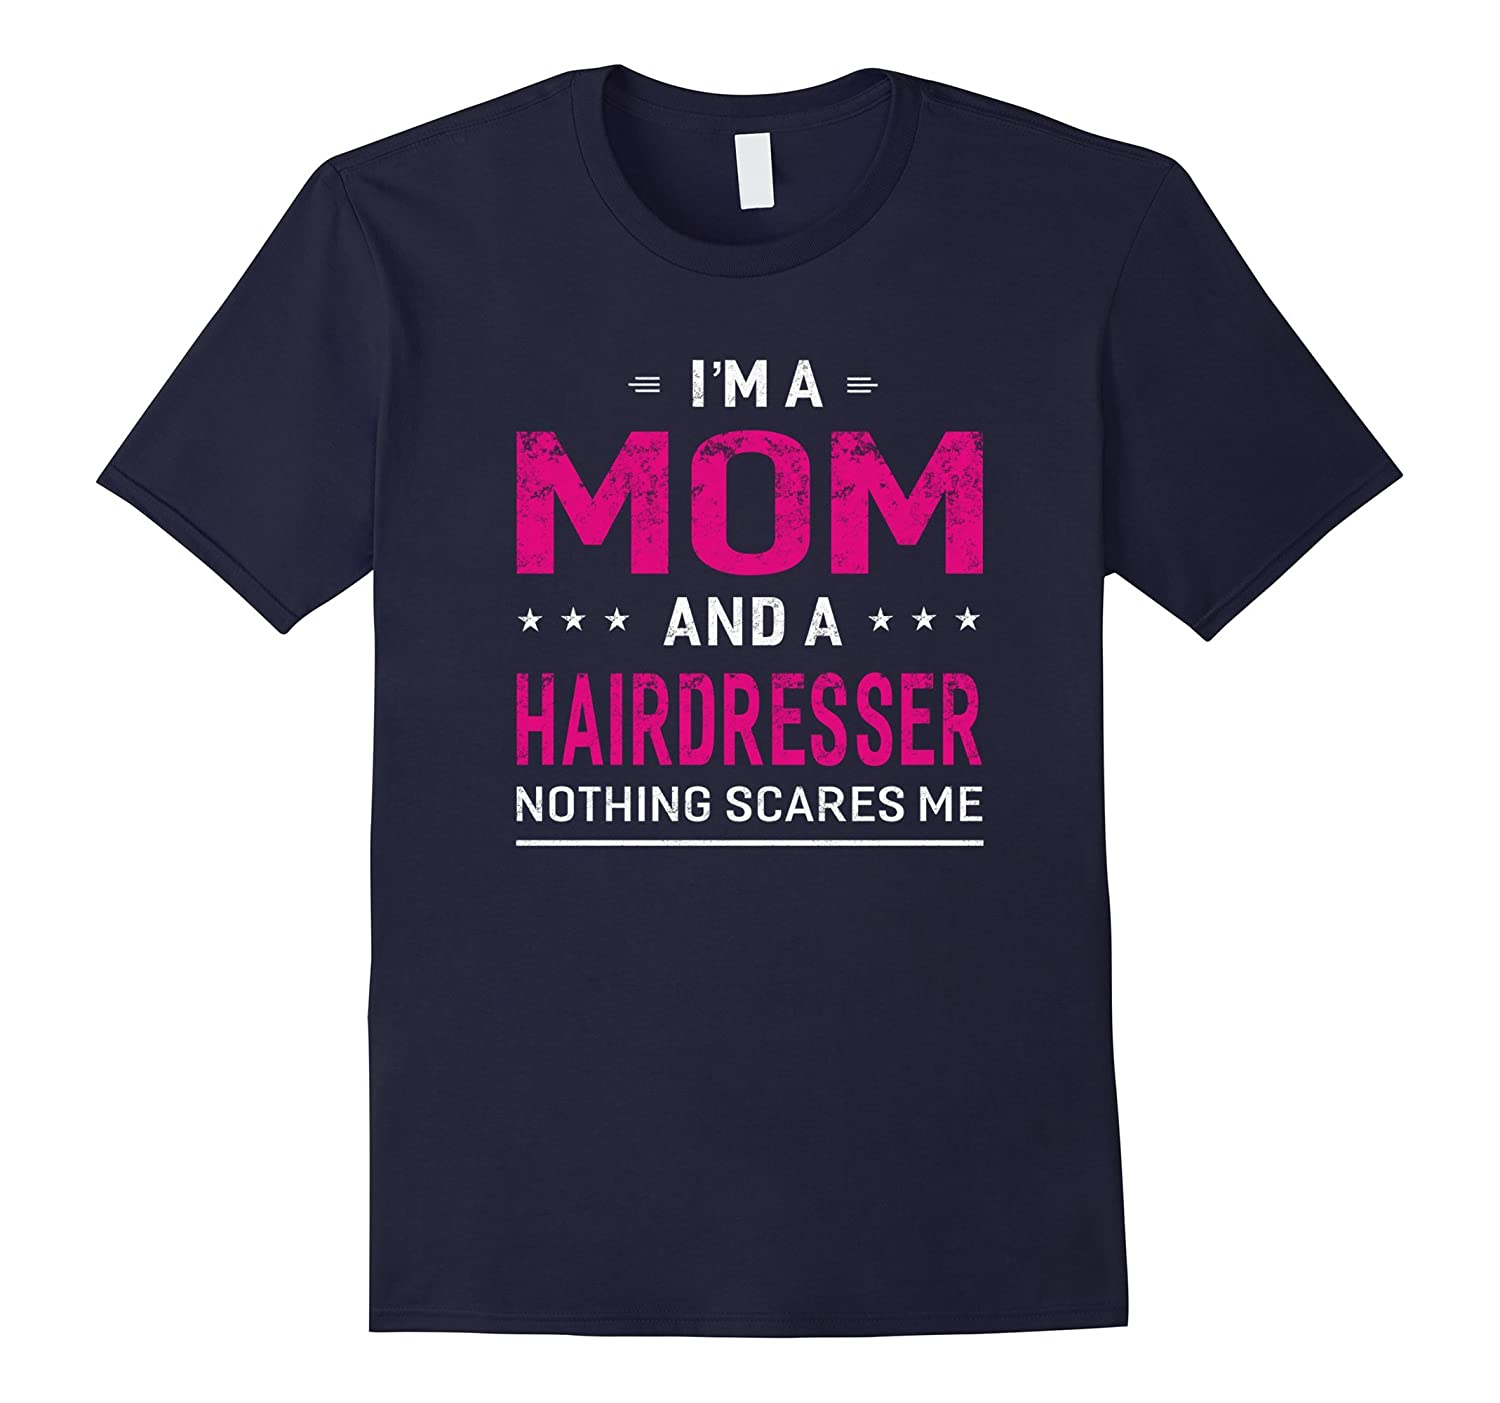 A Mom And Hairdresser T-shirt For Women Mother Funny Gift-TD